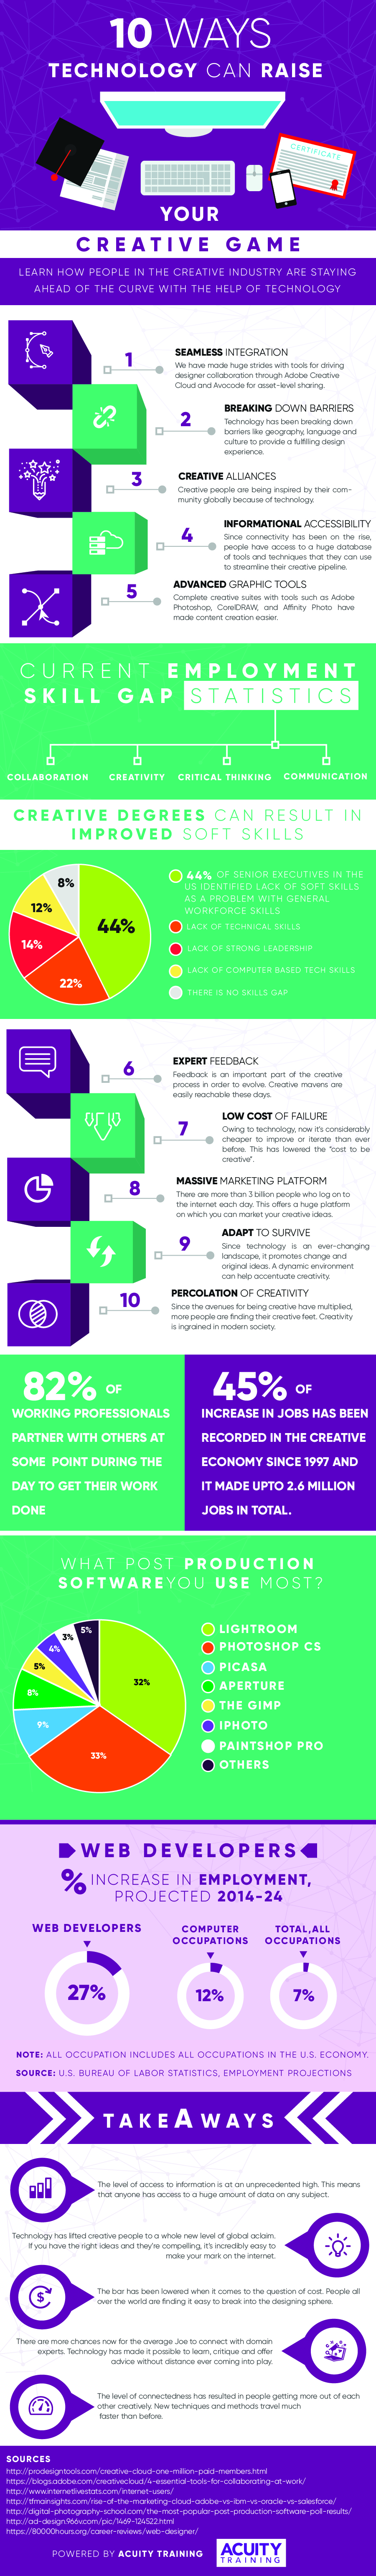 Infographic showing the 10 ways technology can improve your creativity